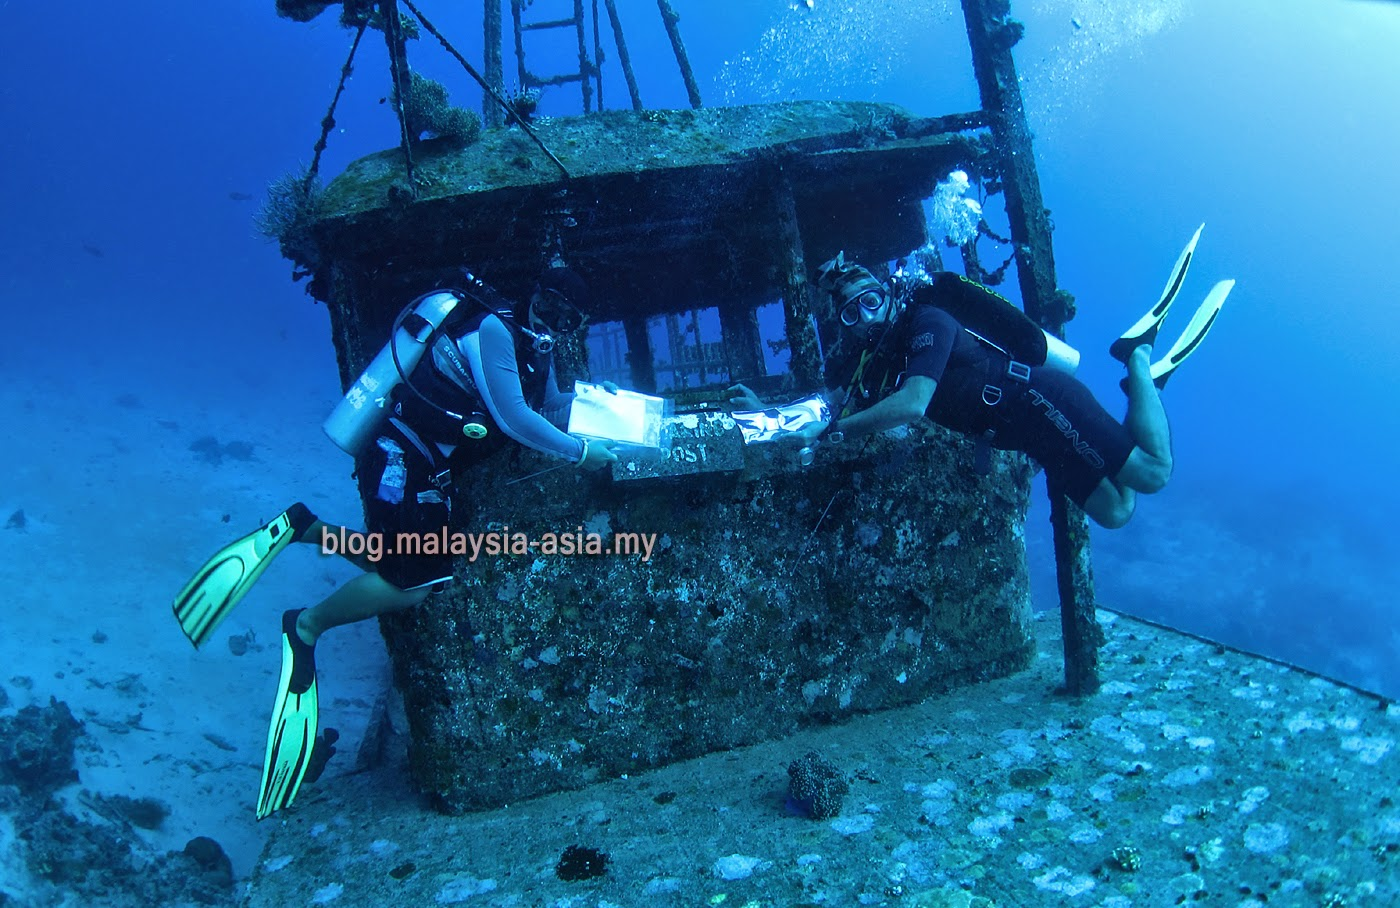 Underwater Post Office Mataking Island